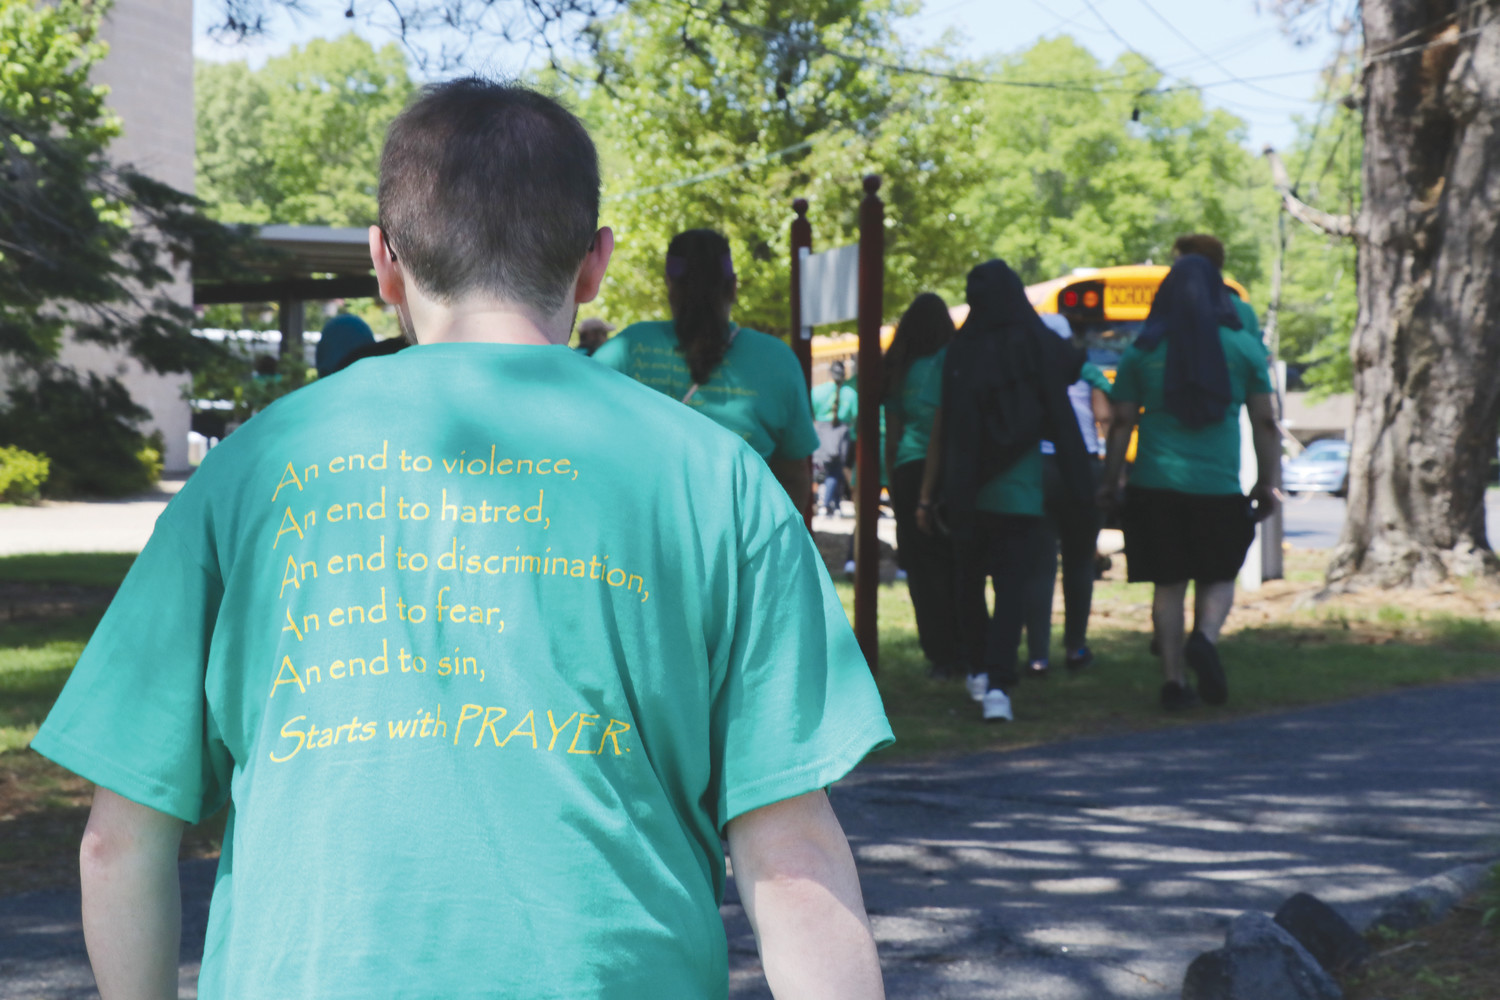 Students and staff wore shirts with a hopeful message that making peaceful and effective changes in society should always start with prayer.